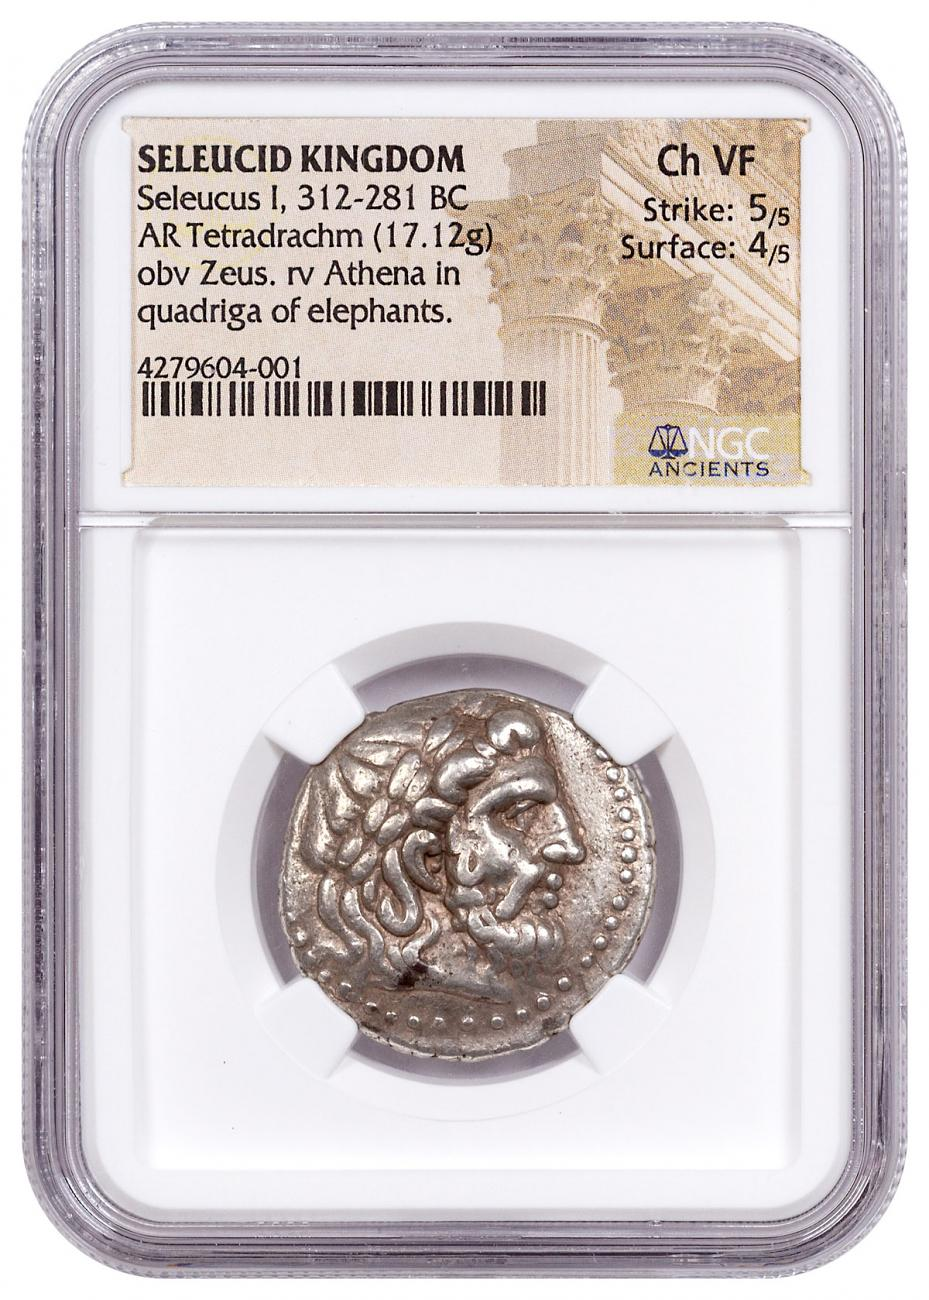 Seleucid Empire, Silver Tetradrachm of Seleucus I (312-281 BC) - NGC Ch.VF (Strike: 5/5, Surface: 4/5) ELEPHANT QUADRIGA